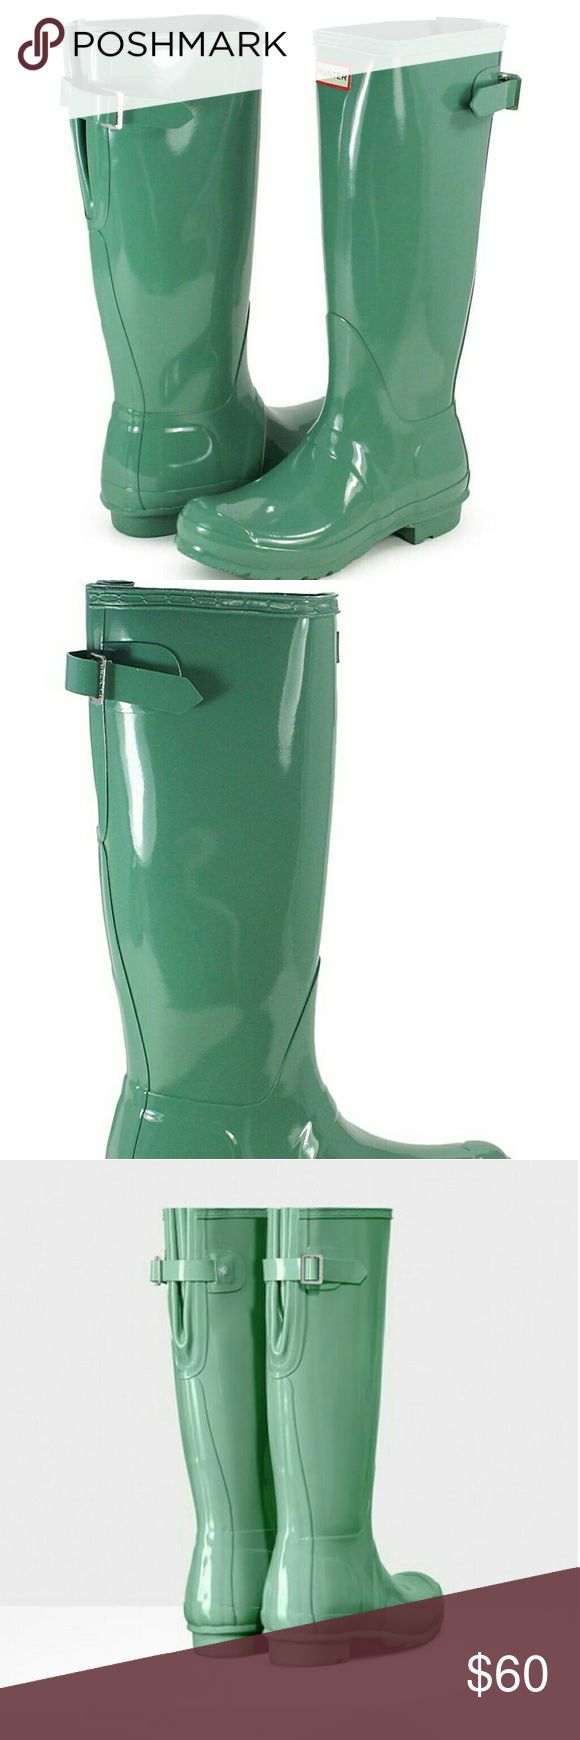 """ISO NOT SELLING Succulent Adjustable Hunter Boots I am listing these again because they were purchased, but I don't actually own these :D This is an ISO post meaning I am """"in search of"""" these. Very rare but cute! I need them in a size 10 or even an 11! If you want to sell these to me, or know someone who would, comment below! Will greatly appreciate it!!!! Like always, happing shopping poshers!!!!!!!!! Hunter Shoes Winter & Rain Boots"""